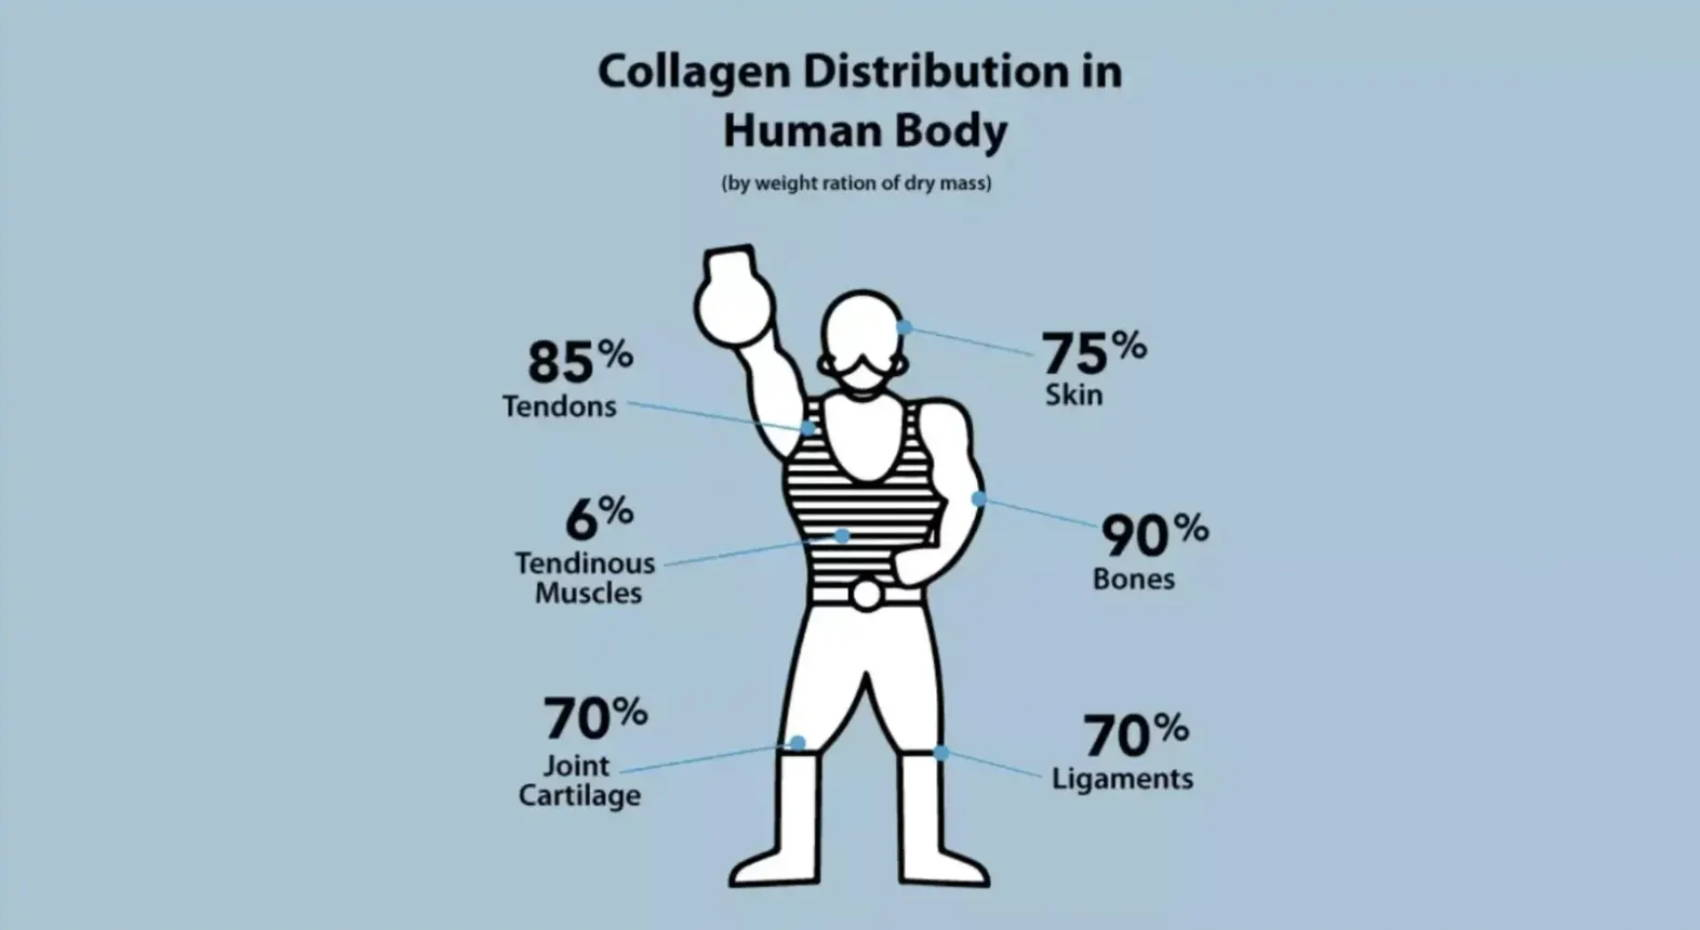 Collagen Distribution in The Human Body: Amandean 2018